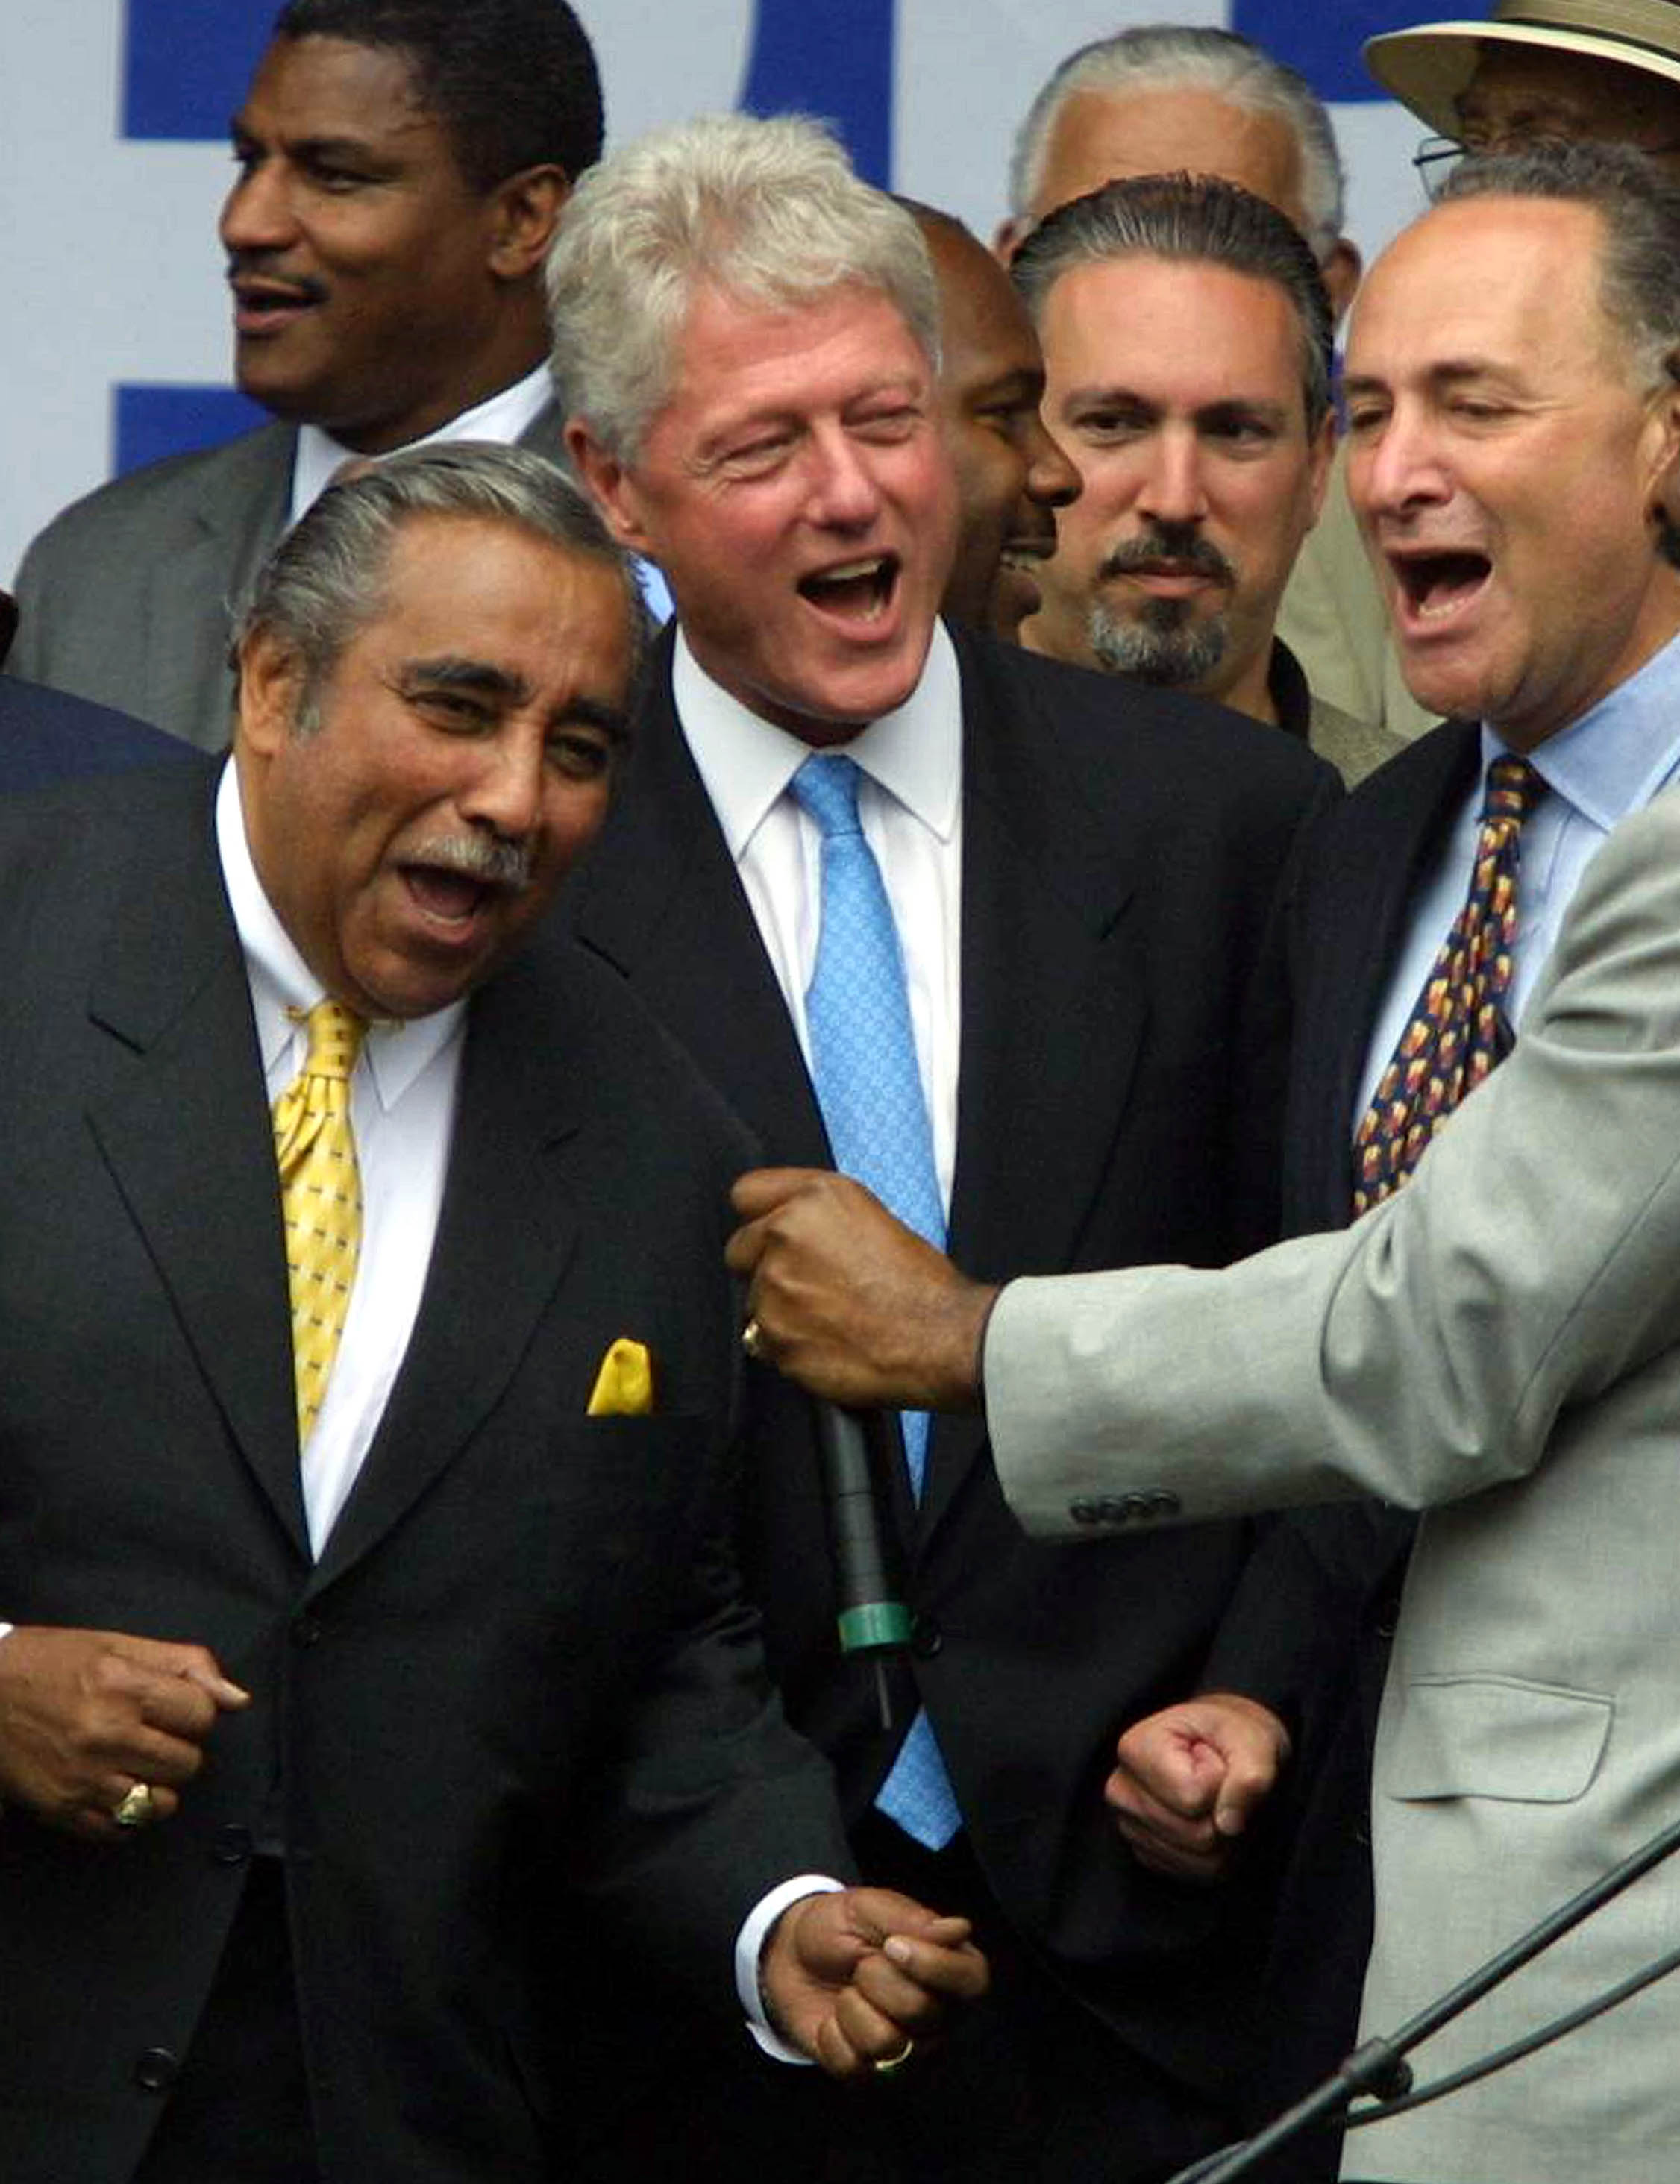 Former U.S. President Bill Clinton sings with U.S. Rep. Charles Rangel, left, and U.S. Sen. Charles Schumer, right, in the Harlem neighborhood of New York City, July 30, 2001.